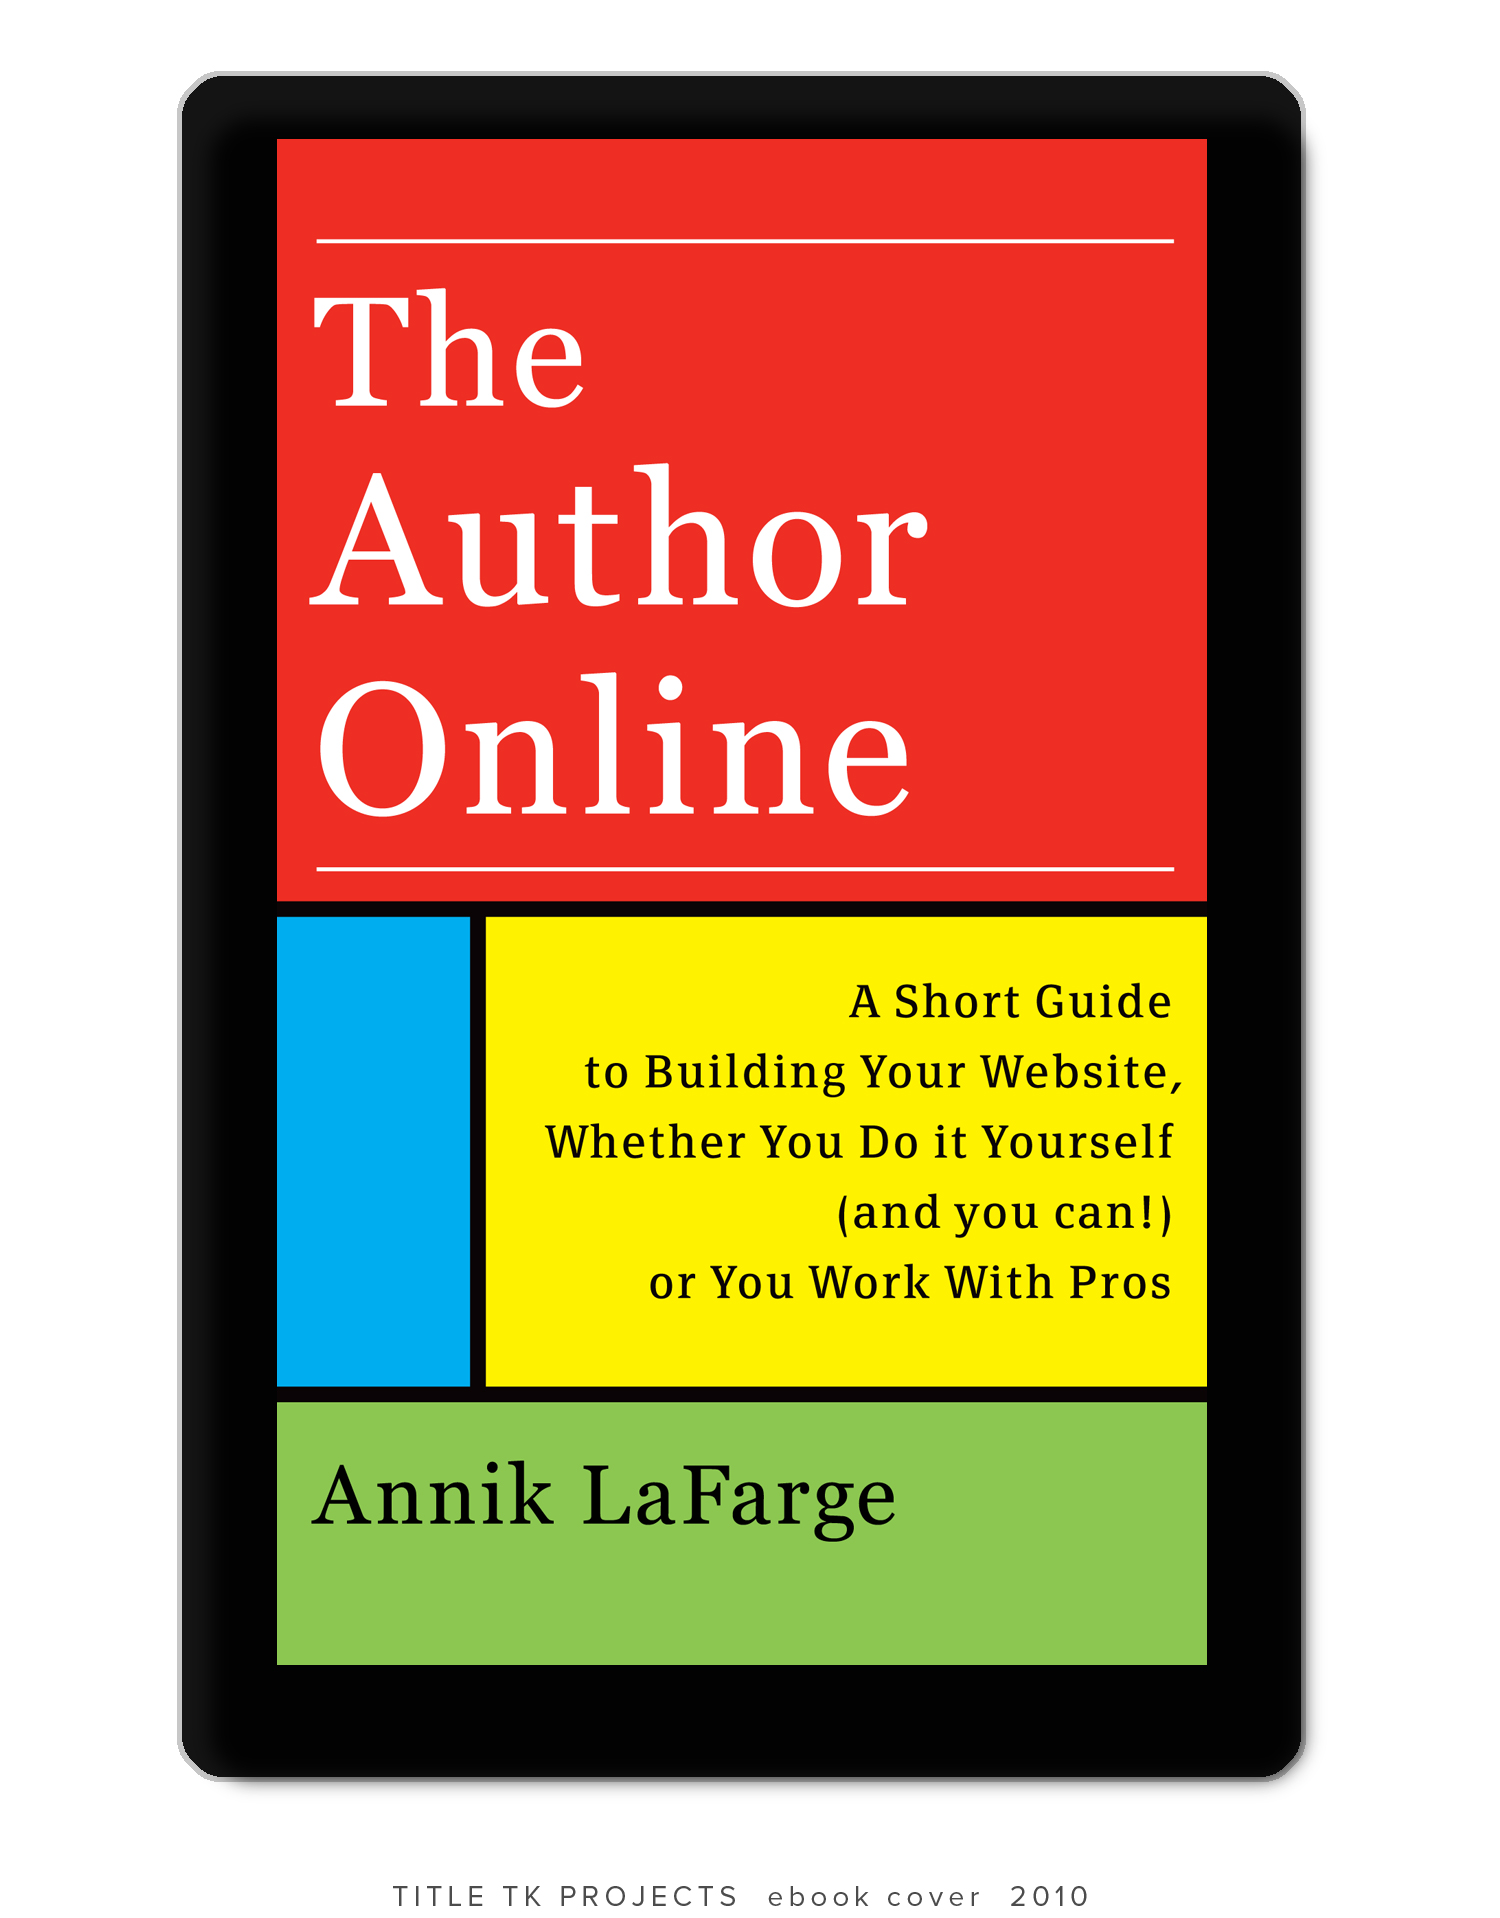 THE-AUTHOR-ONLINE-ss6.jpg